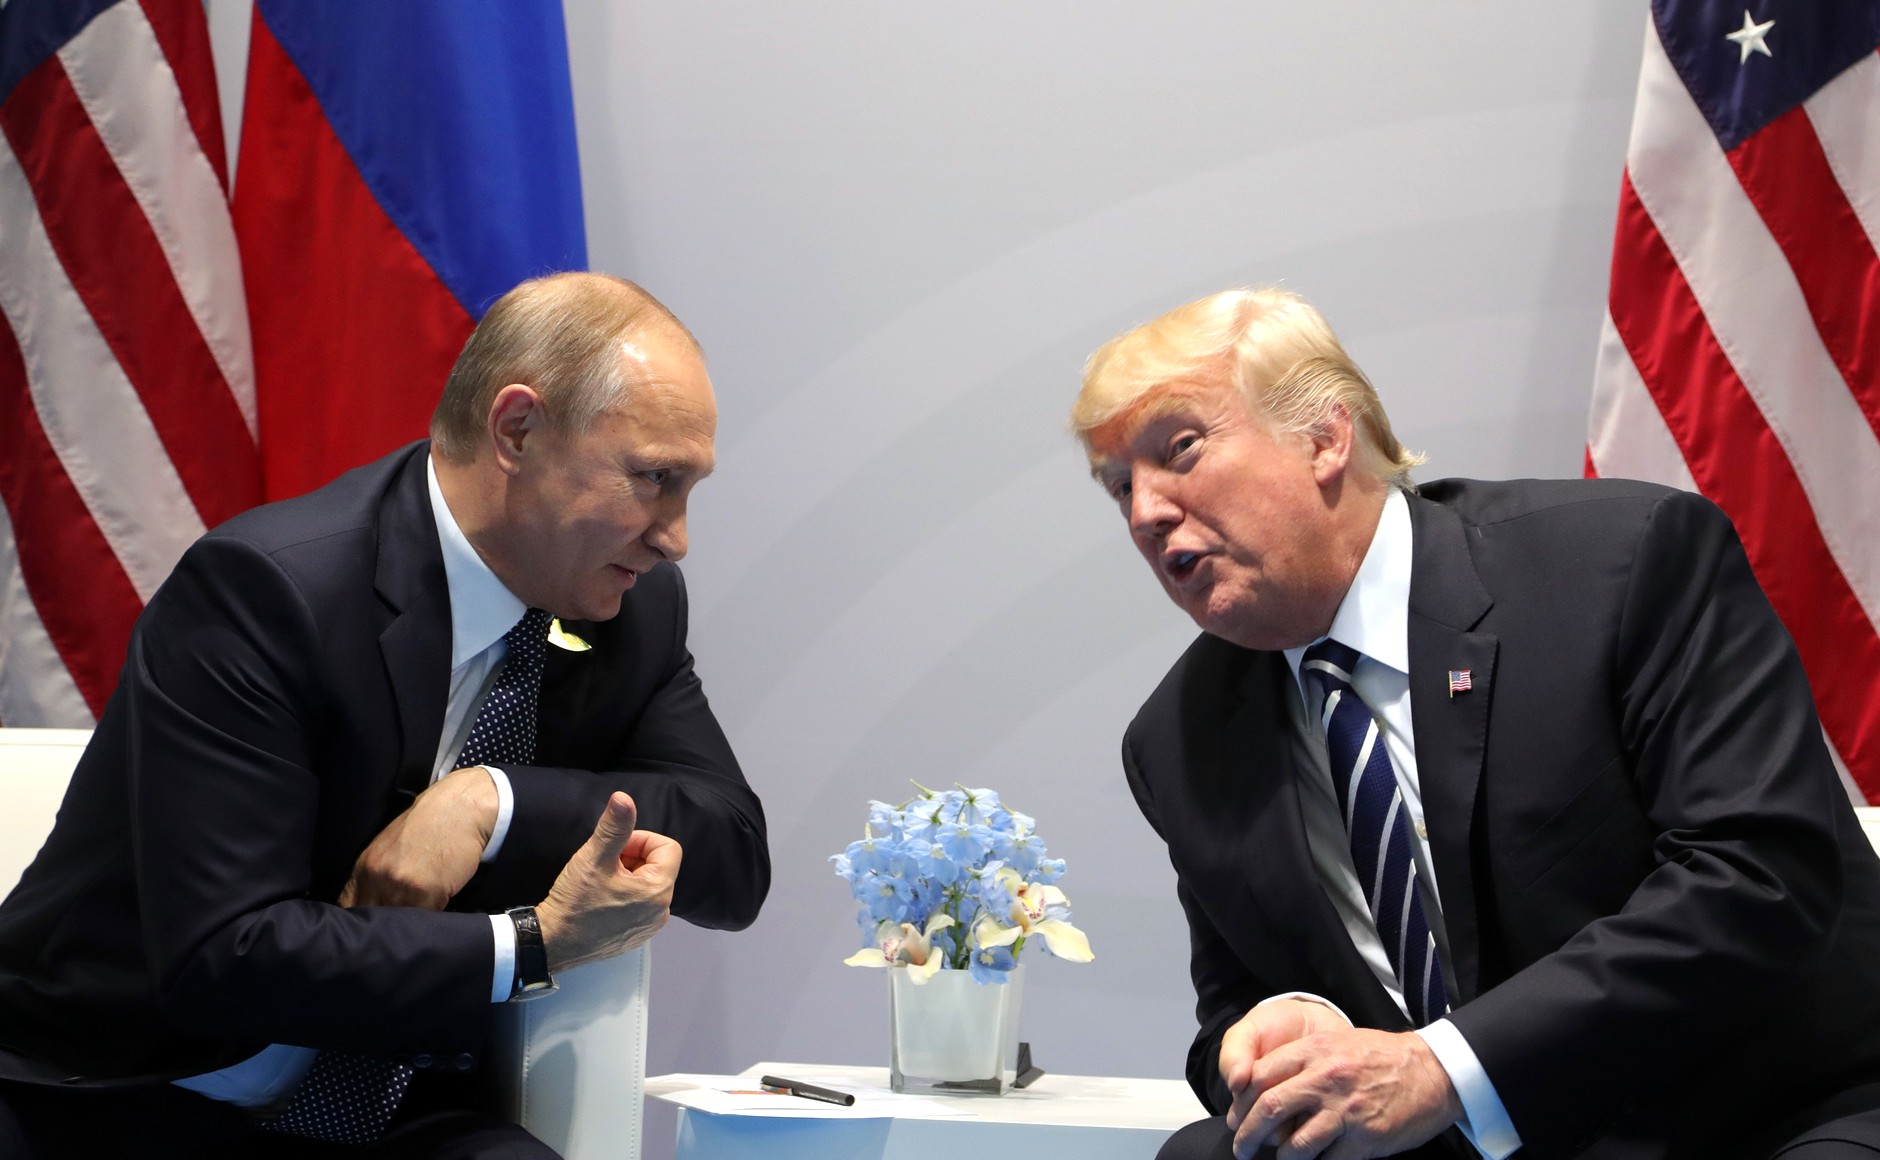 Vladimir_Putin_and_Donald_Trump_at_the_2017_G-20_Hamburg_Summit_(4)